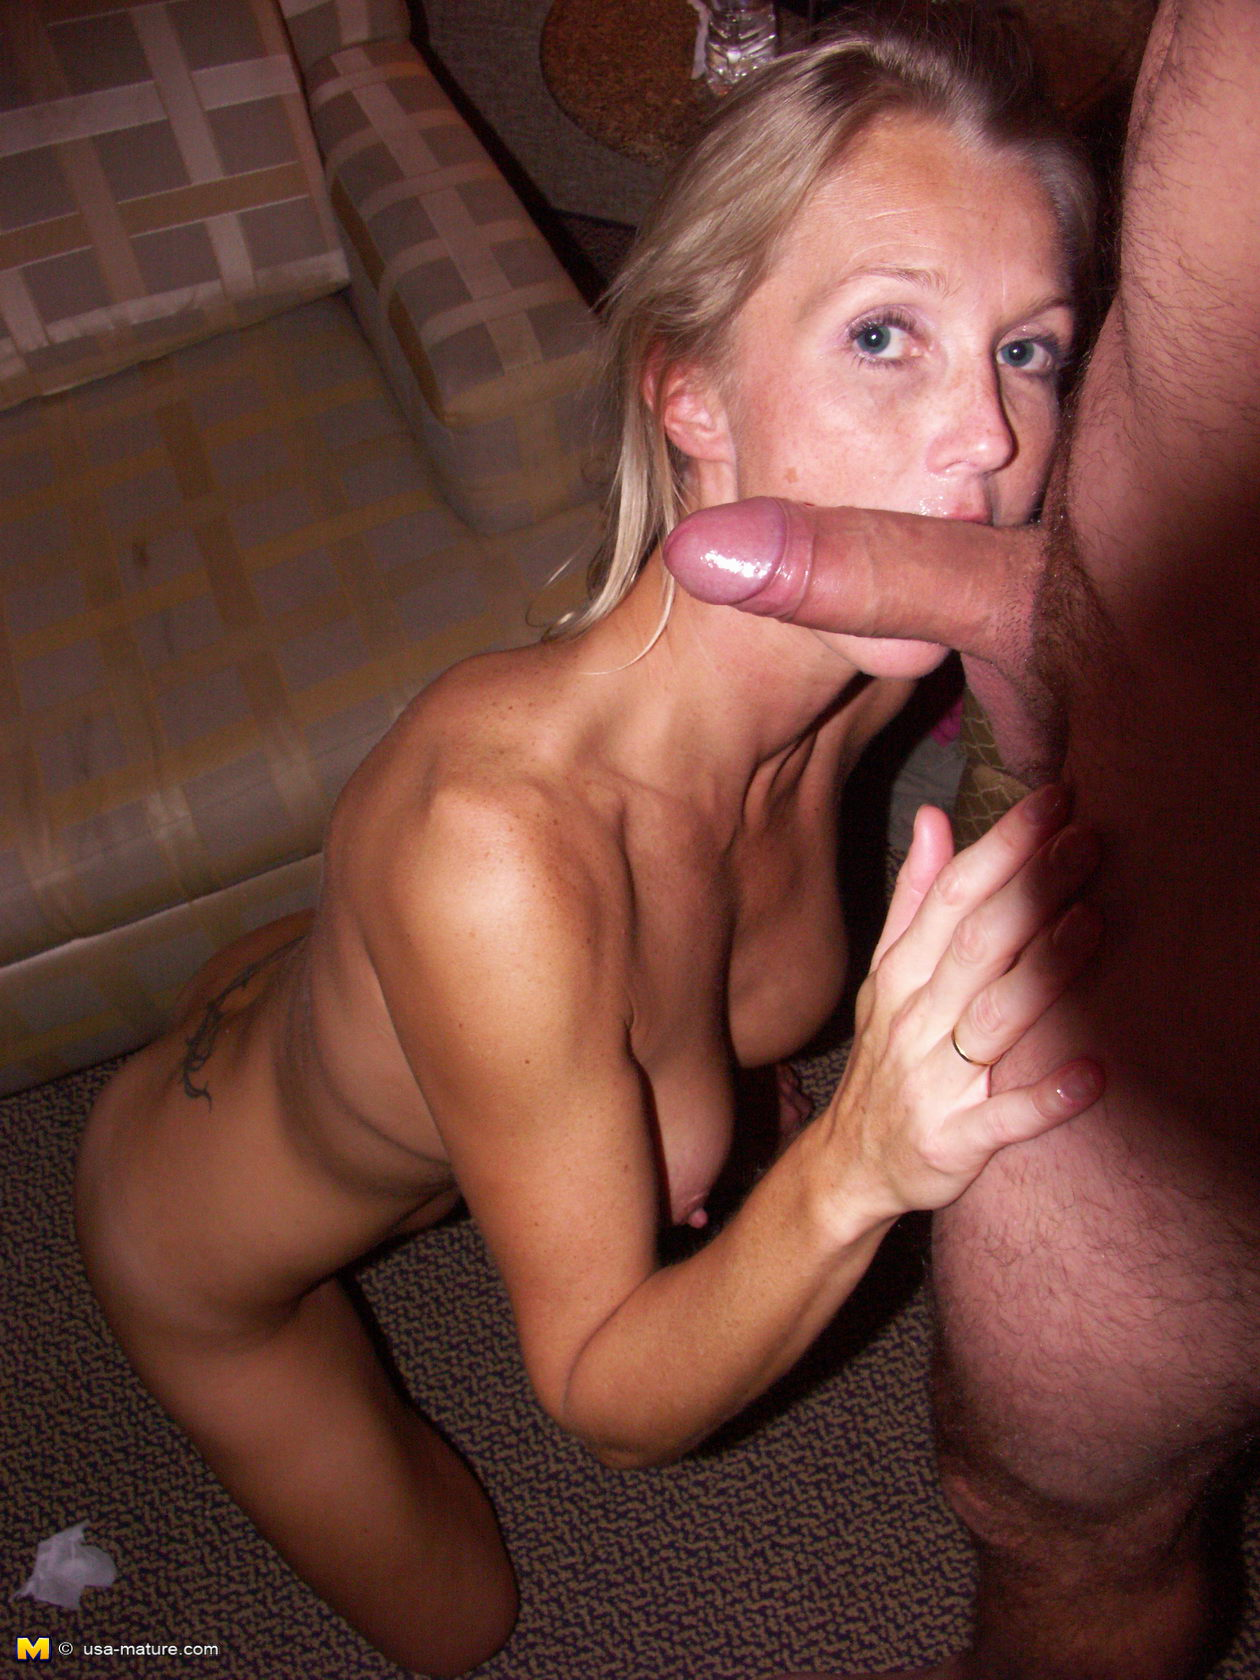 Get over hot sucking Milfs entry shot...the